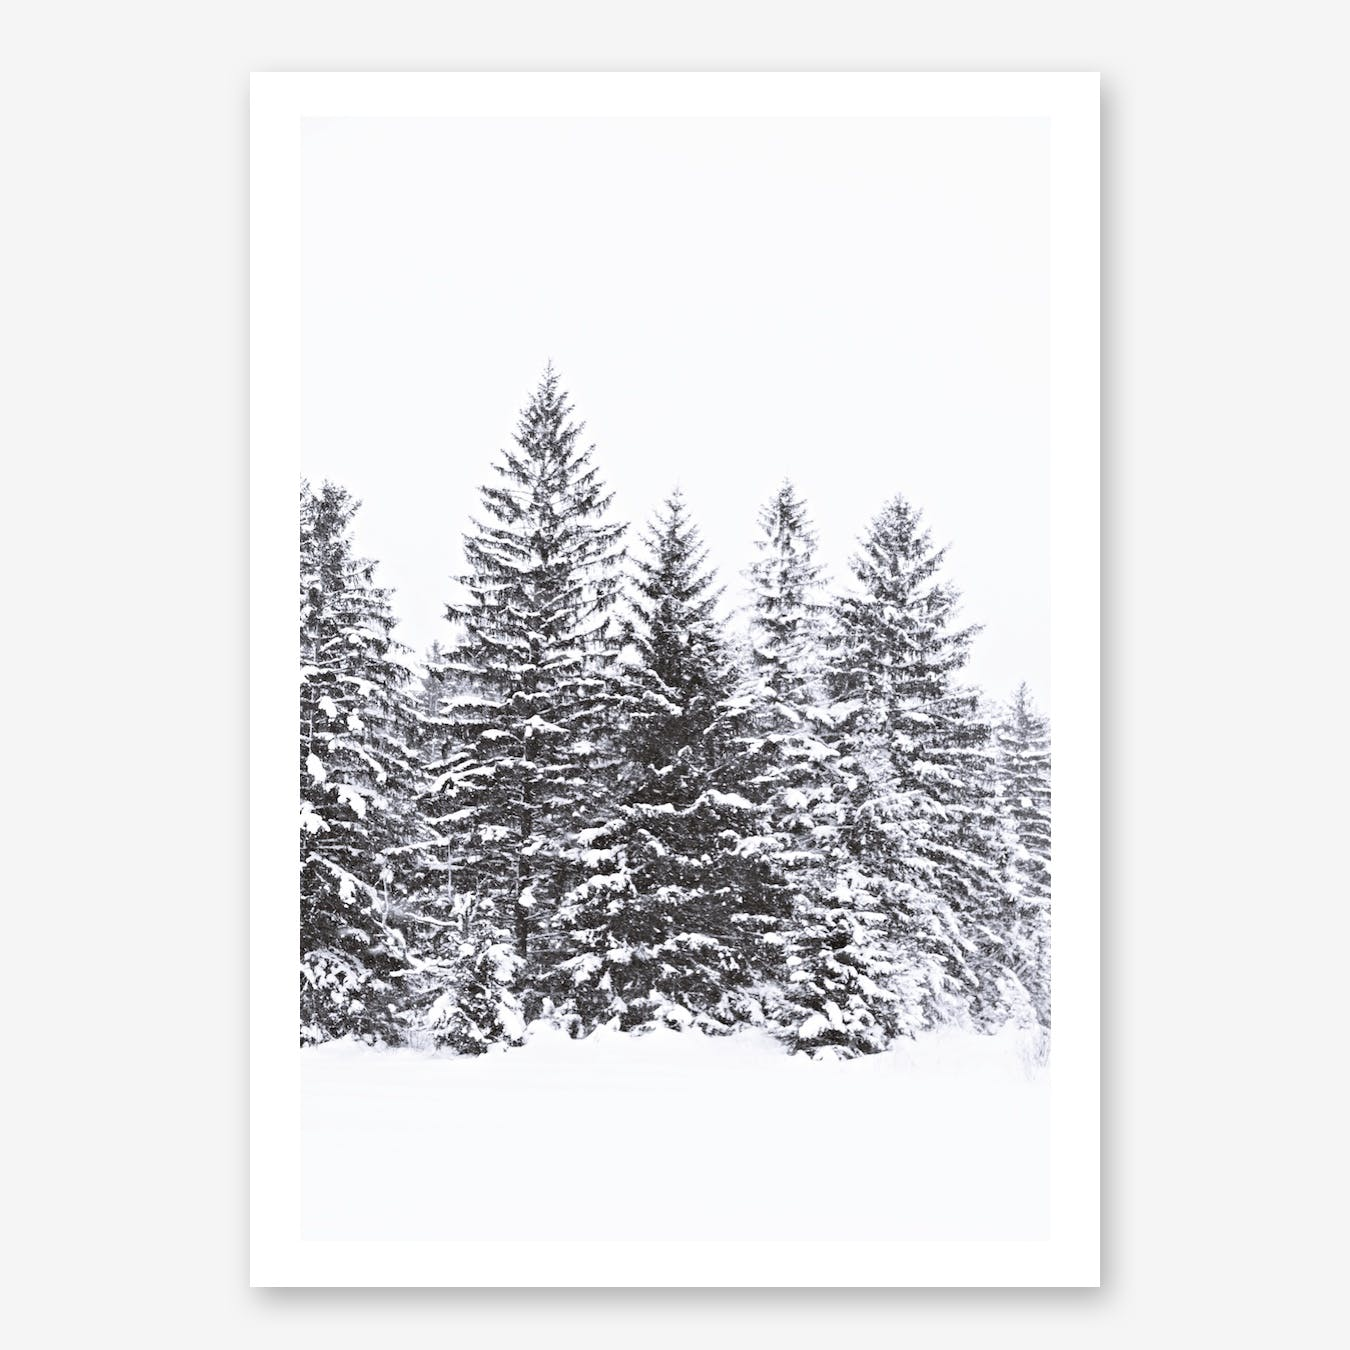 Black Winter Trees in Print